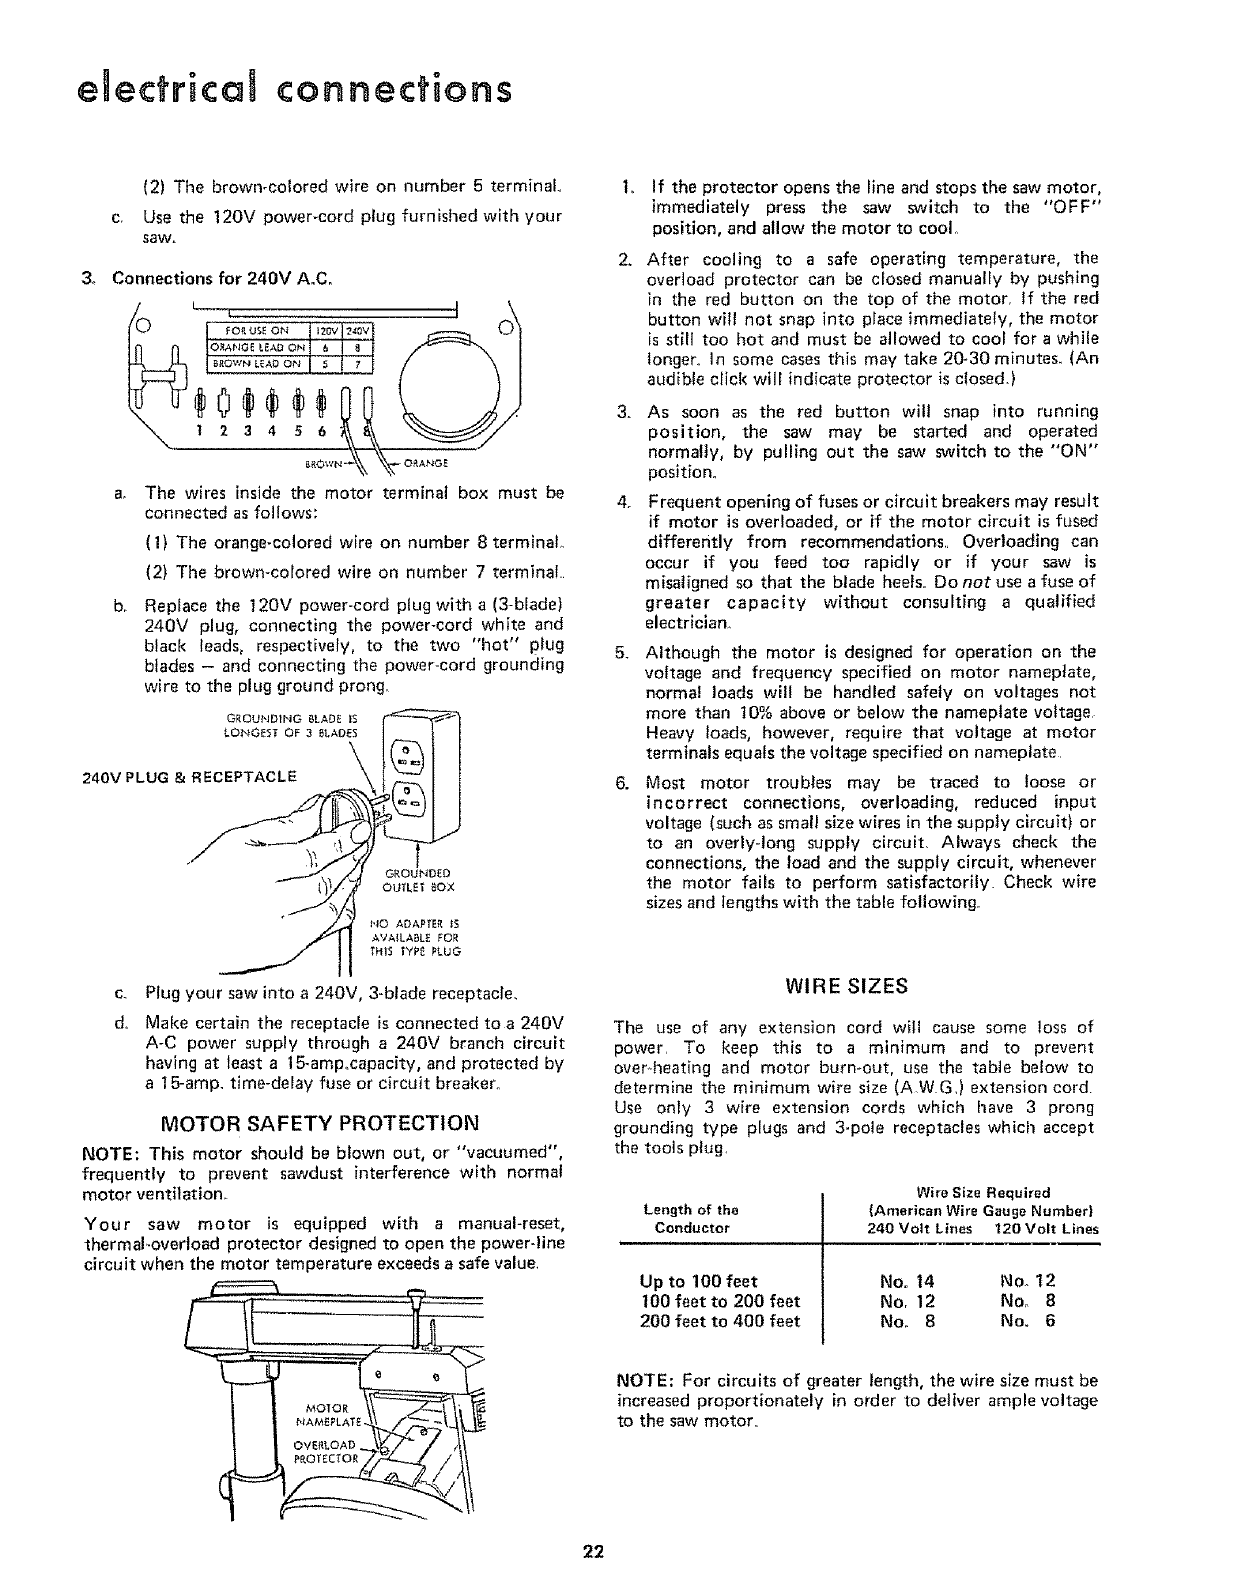 Extension Cord Plug Wiring Diagram Images And Photos Power 240v Solutions